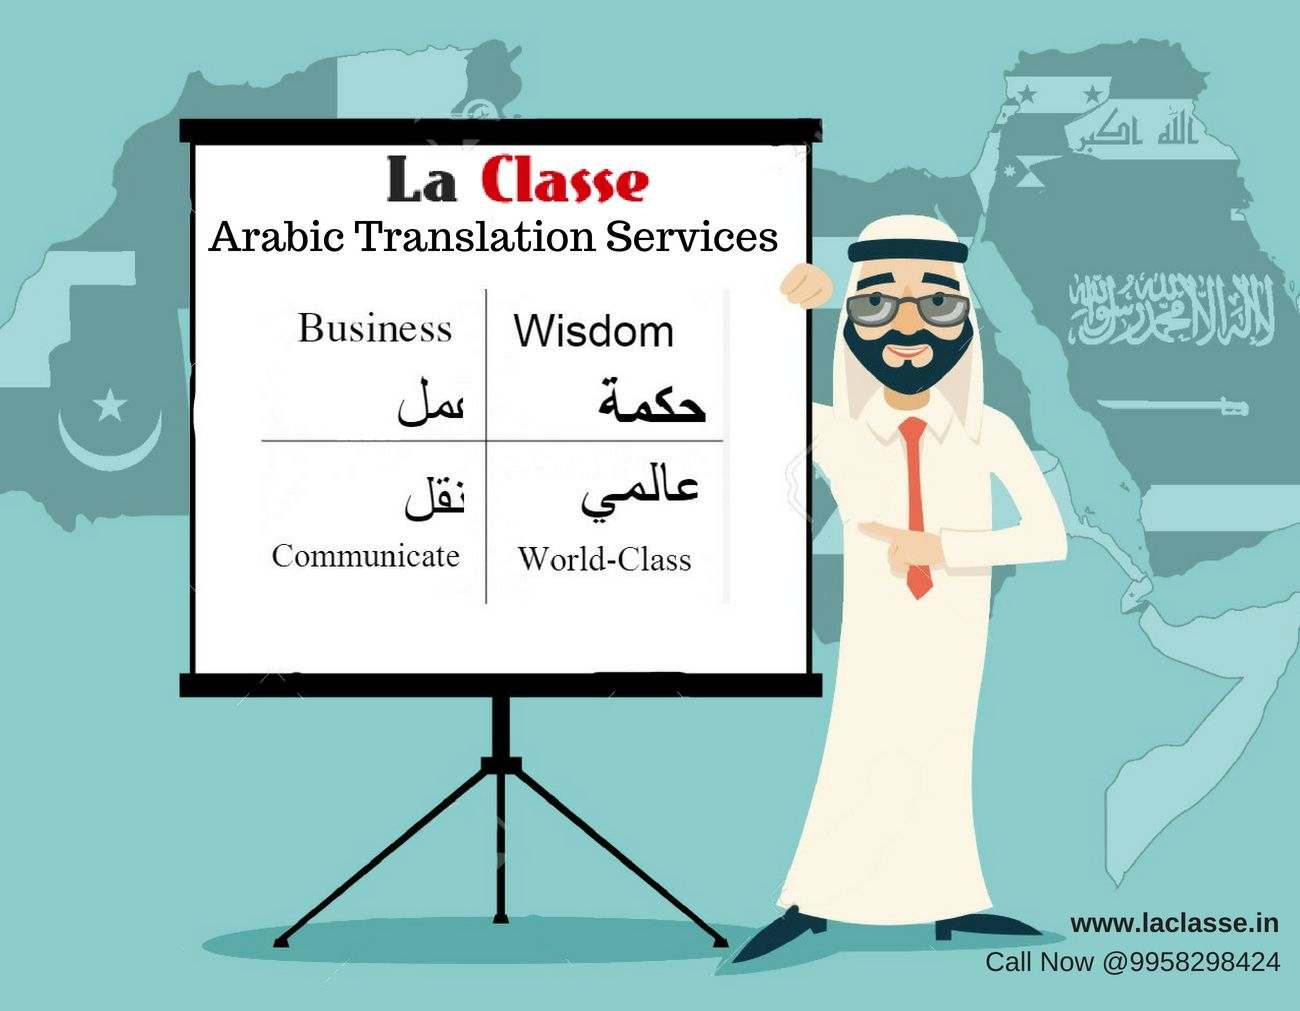 LaClasse offers proficient and precise Arabic